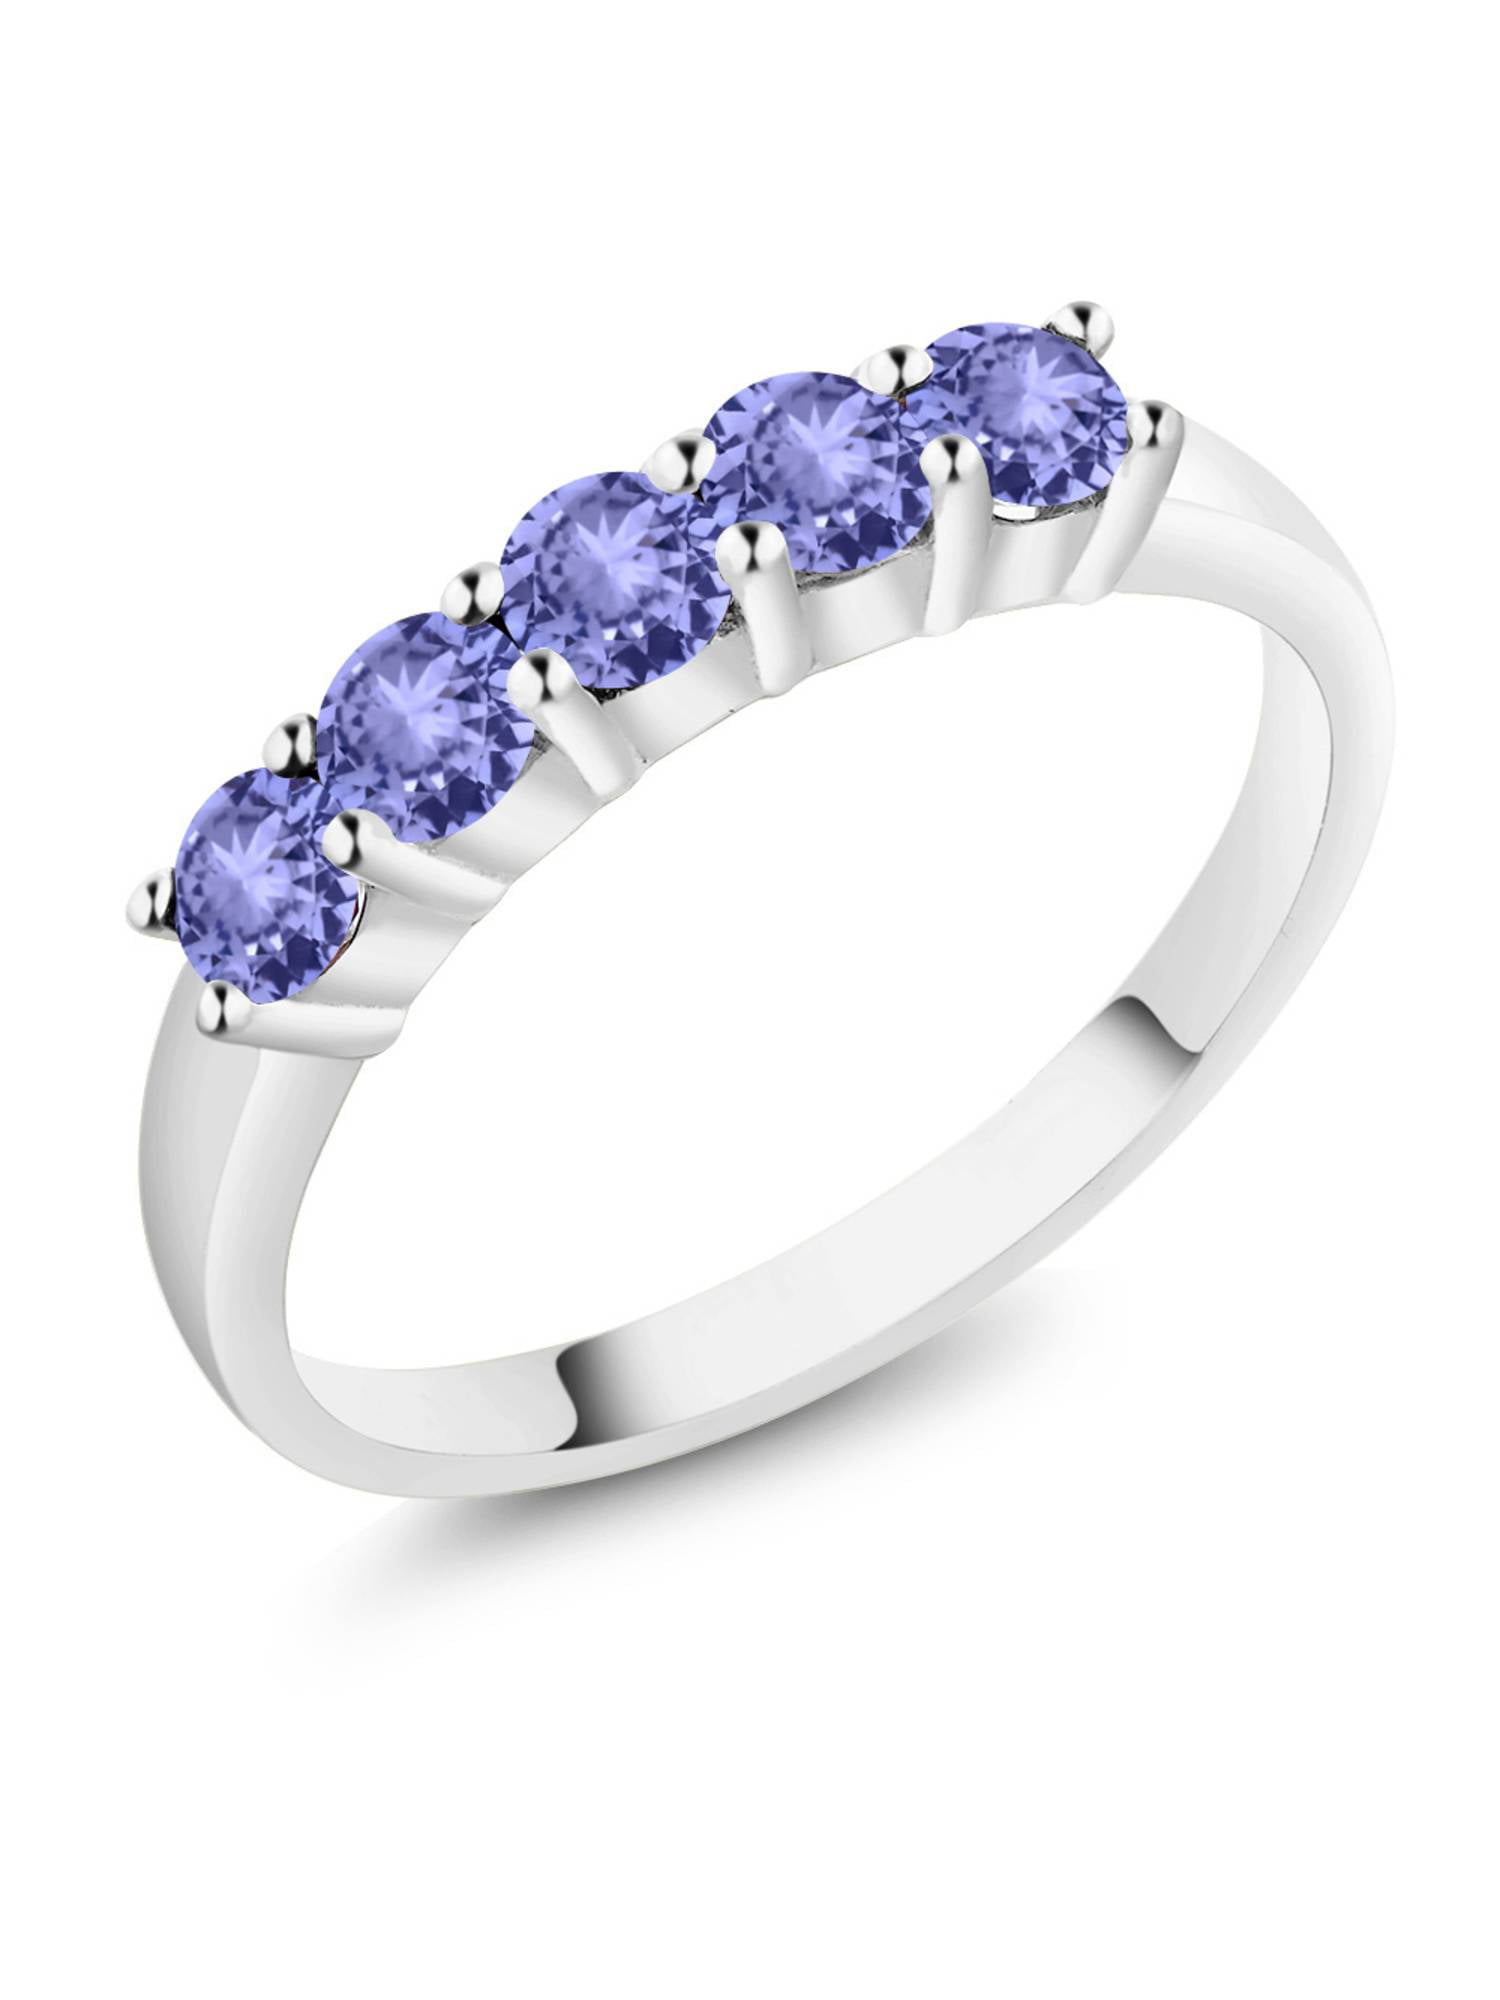 0.90 Ct Round Blue Tanzanite 18k White Gold Ring by